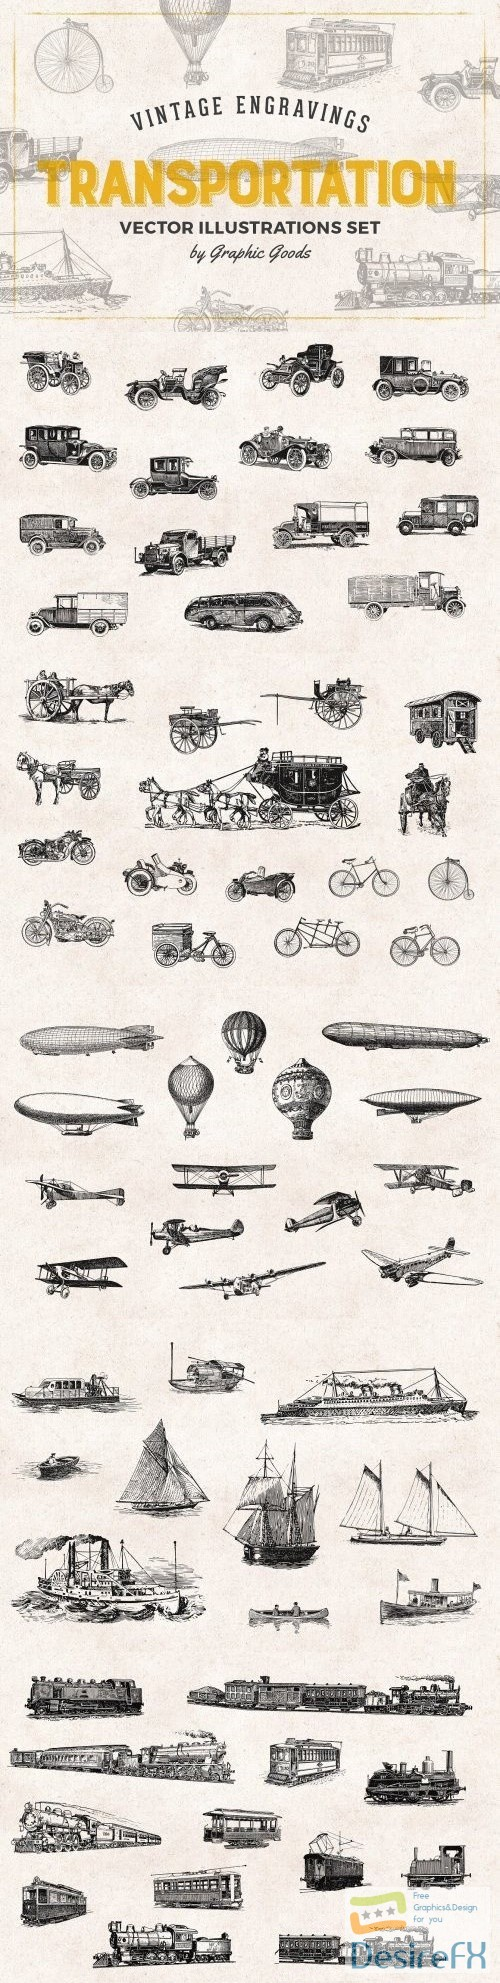 photoshop - Transportation Engravings Set 684871